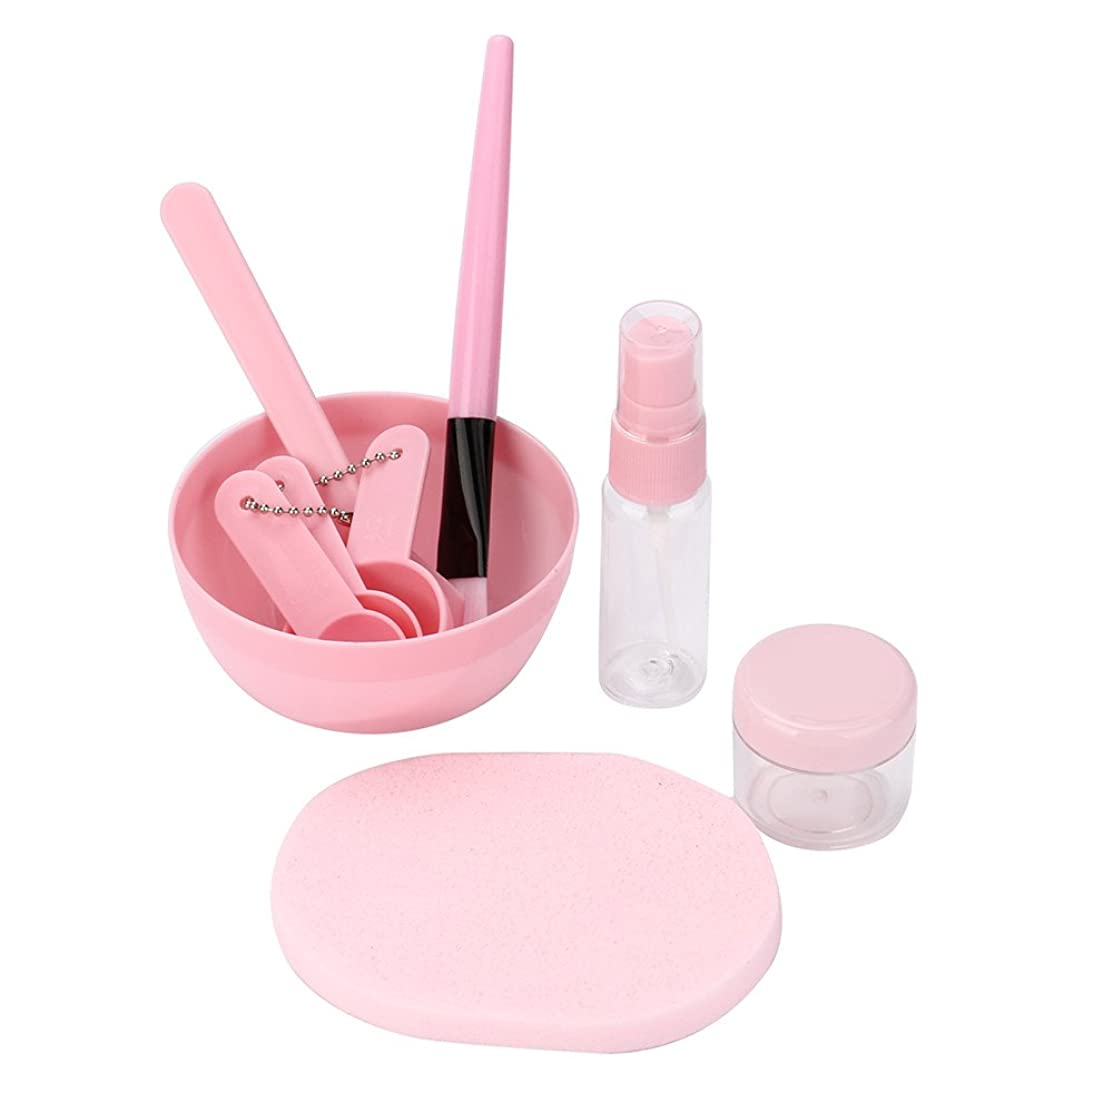 Sacow? Makeup Beauty DIY Facial Face Mask Bowl Brush Spoon Stick Tool